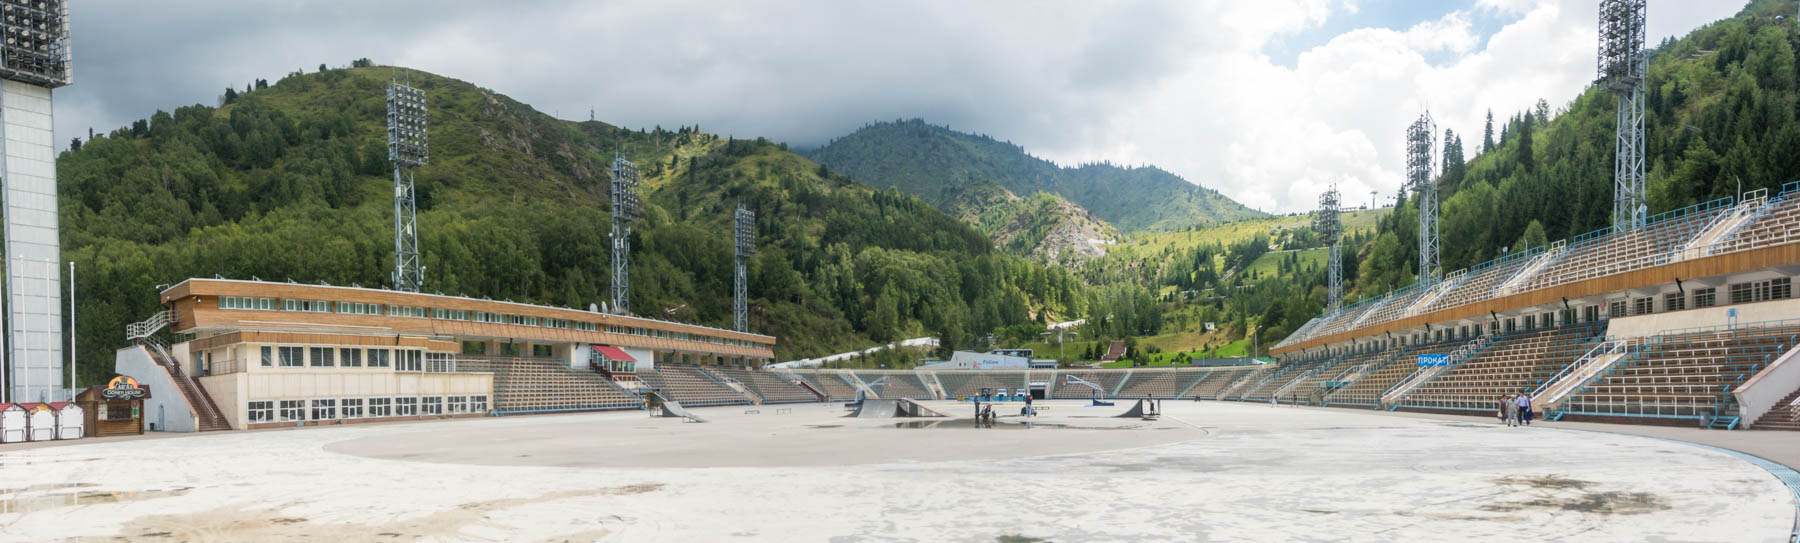 A panoramic view of the Medeu ice skating rink in Almaty, Kazakhstan - Lost With Purpose